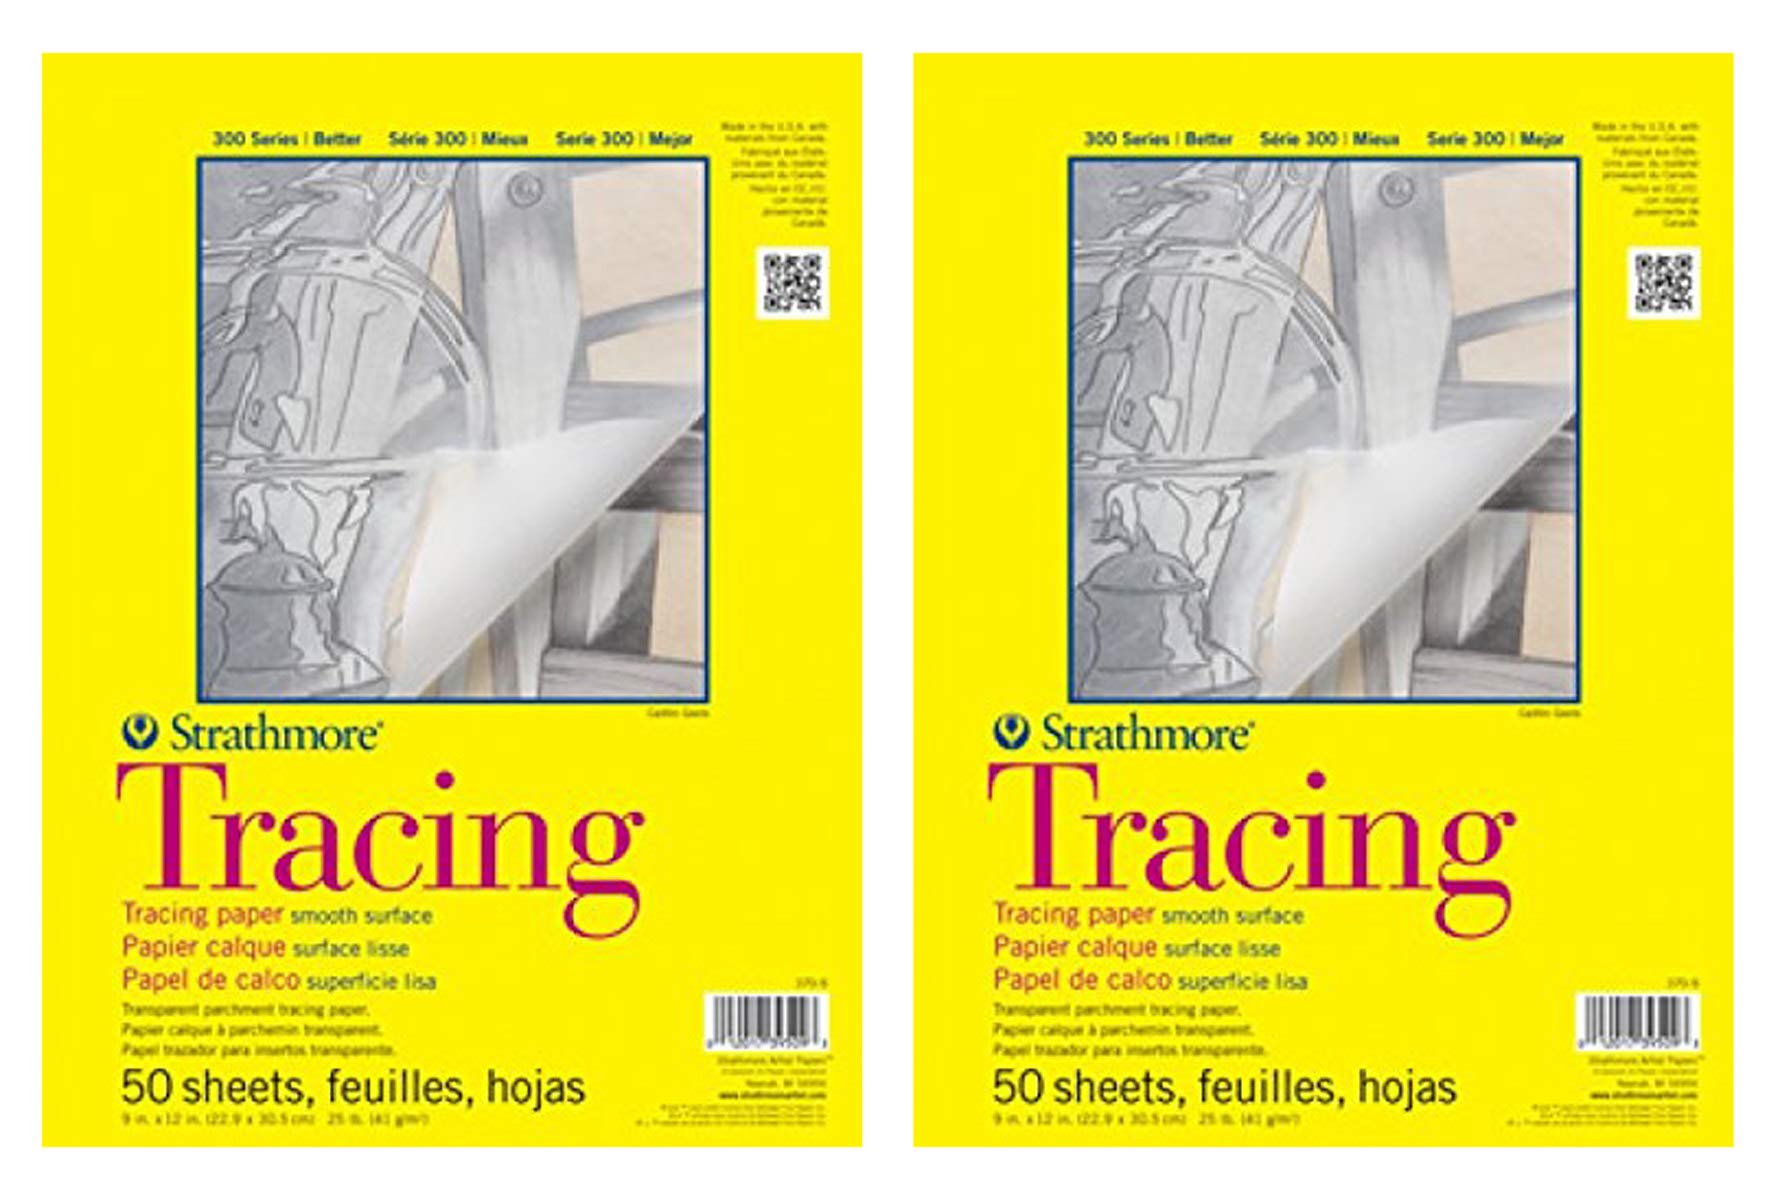 Strathmore IUUH 300 Tracing Pad 11X14 50 Sheets 2 Pack by Strathmore